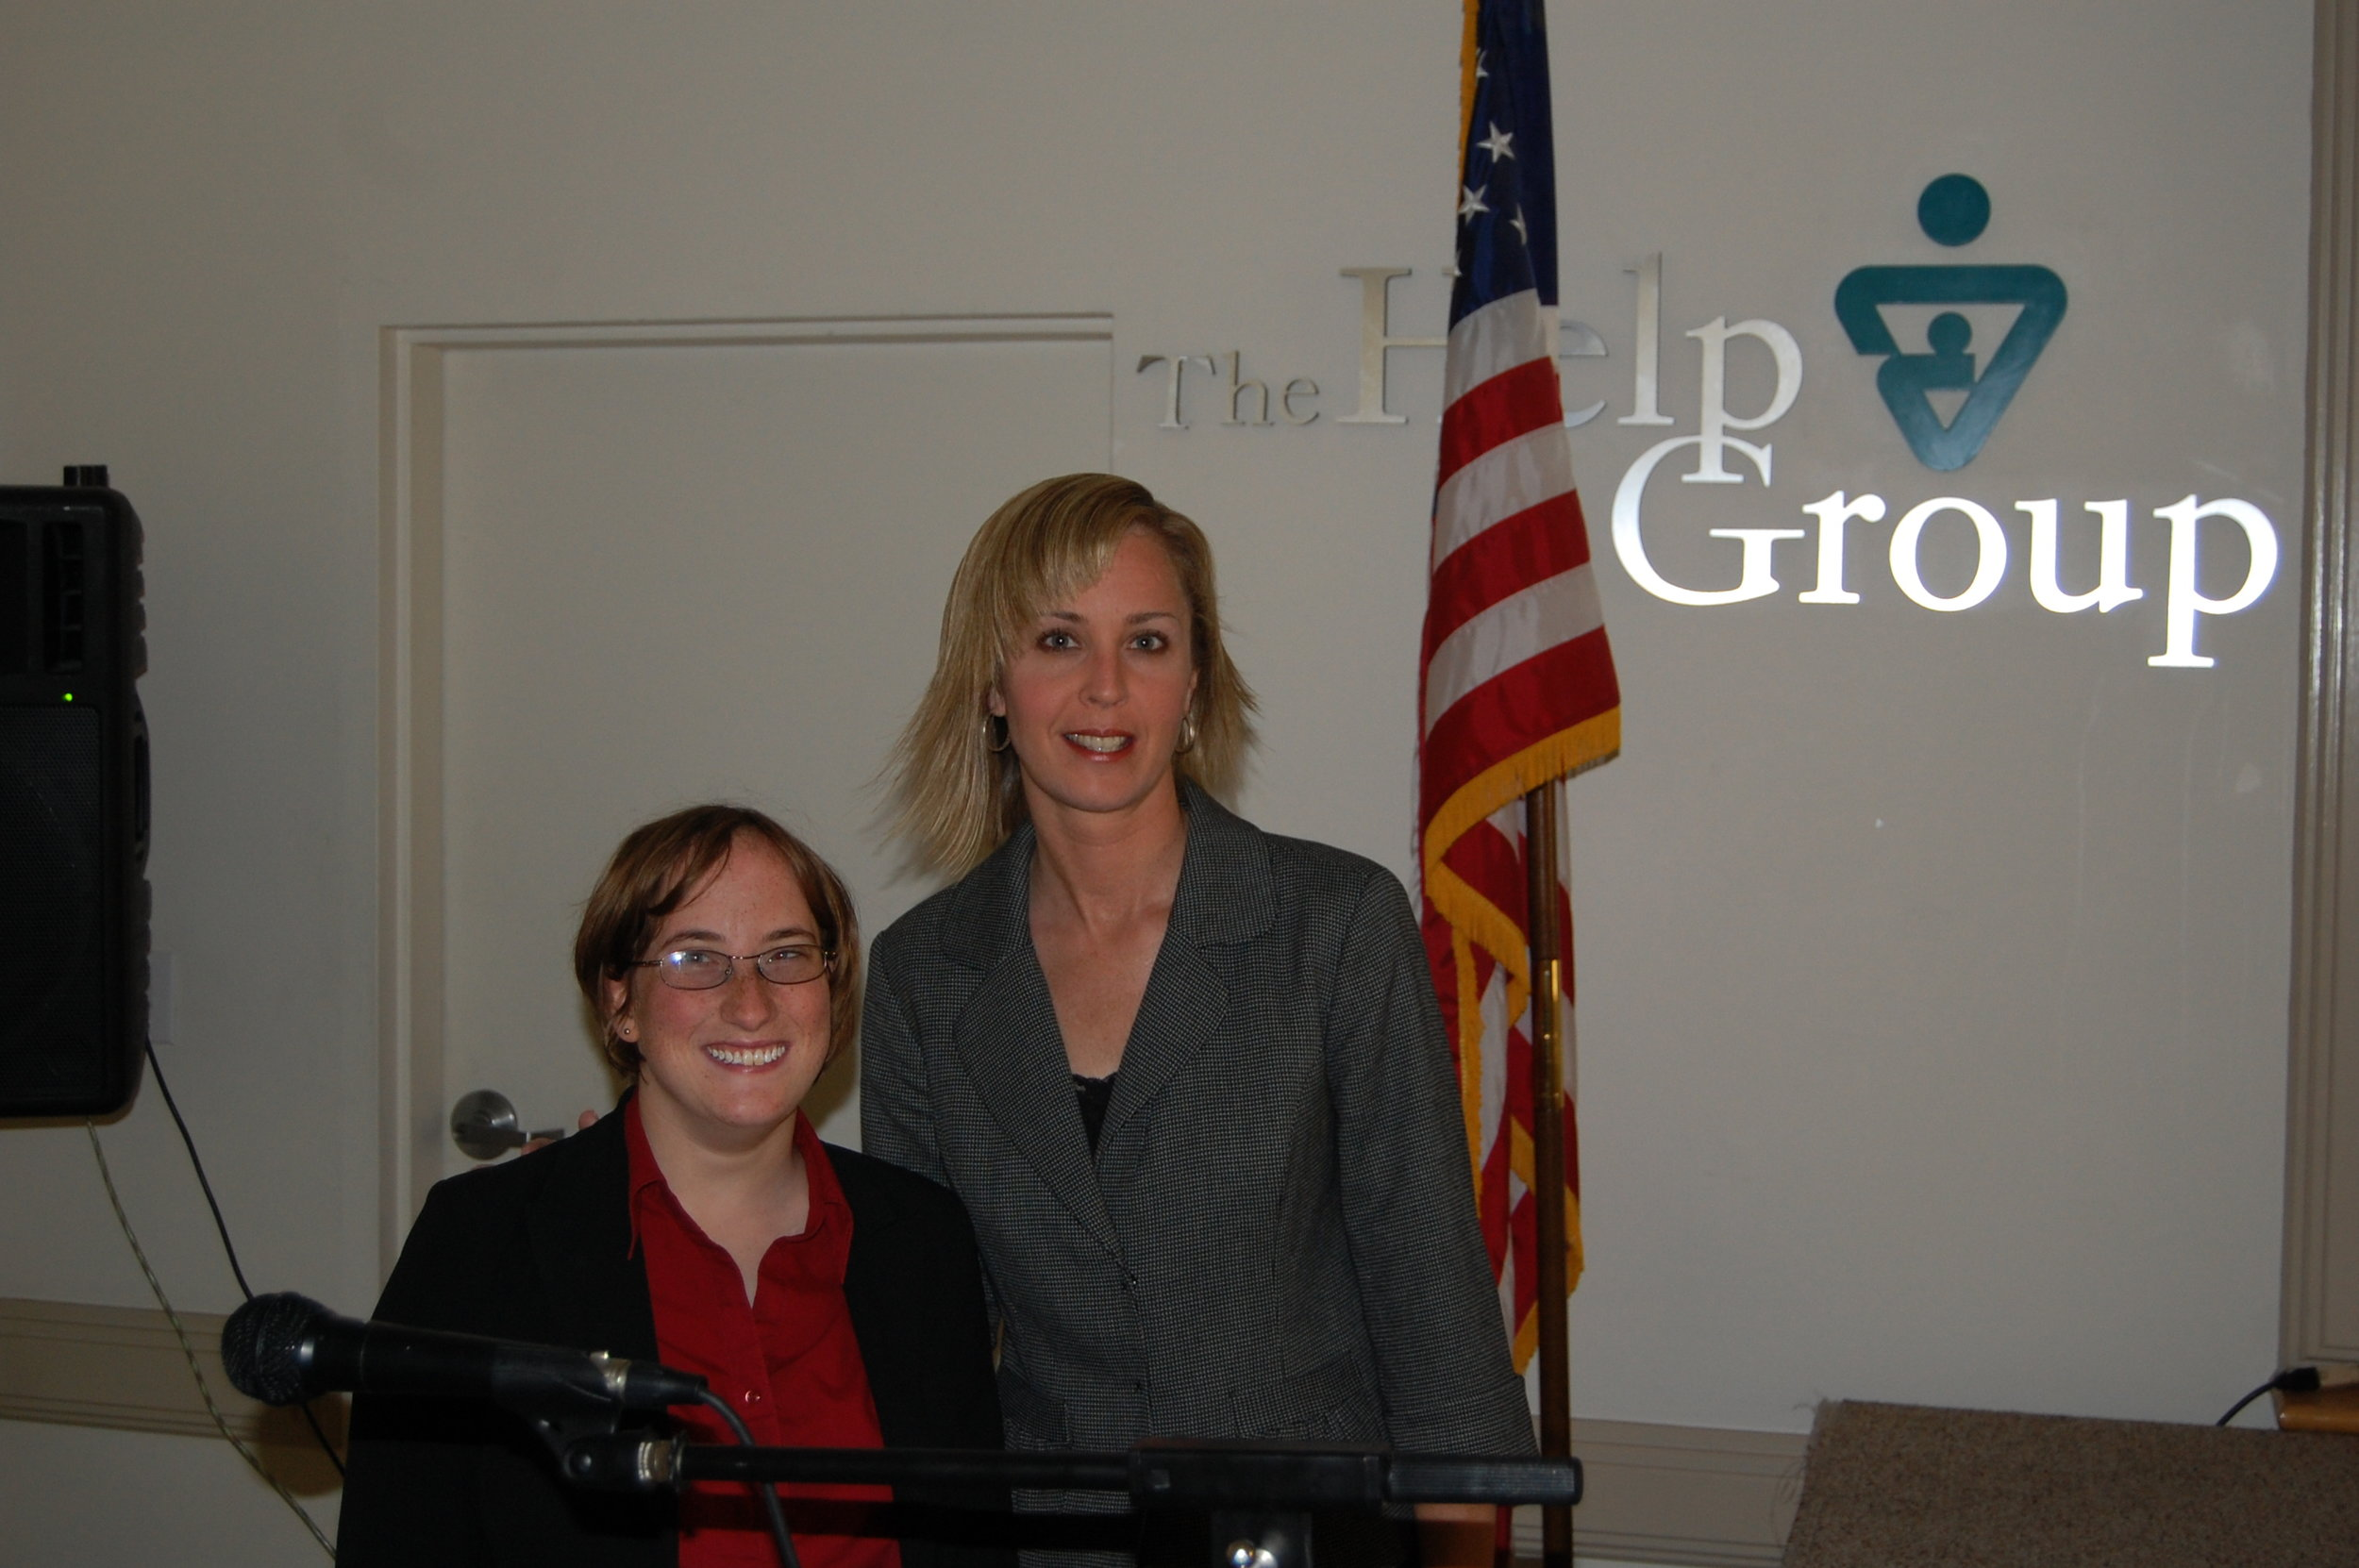 Photo of me and Dr Liz Laugeson at the help group a group of school in LA ( Sherman oaks)